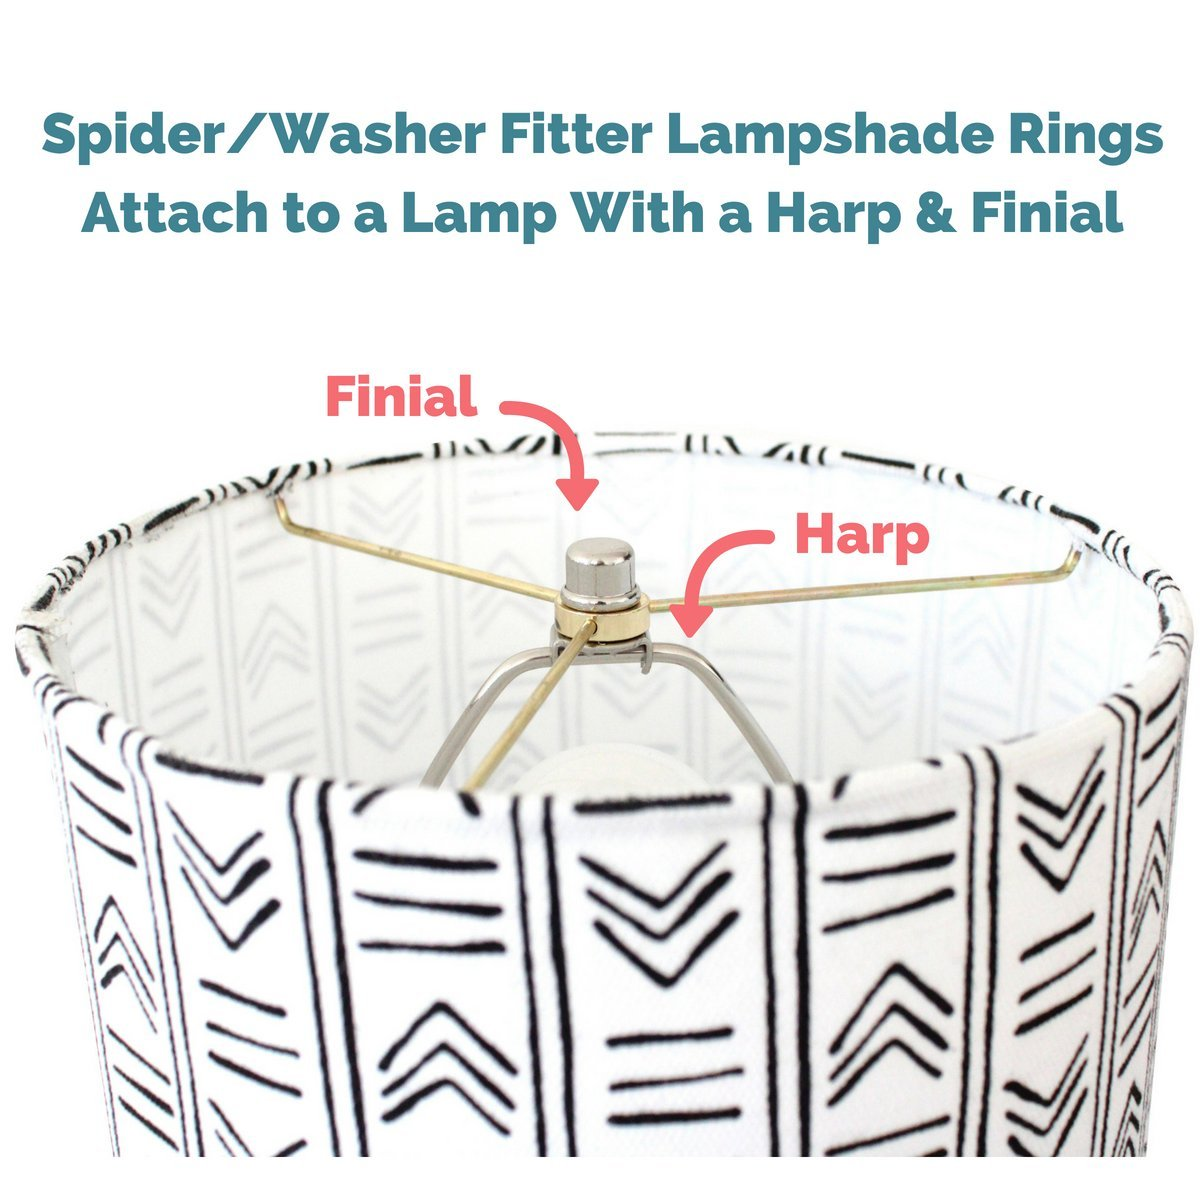 Lamp Shade Ring Set to Make a DIY Drum Ring Lamp Shade - US Style Spider Fitter That Connects to Lamp Harps - Strong Galvanized Steel Ring For Lamp Shade - 12 Inch Diameter